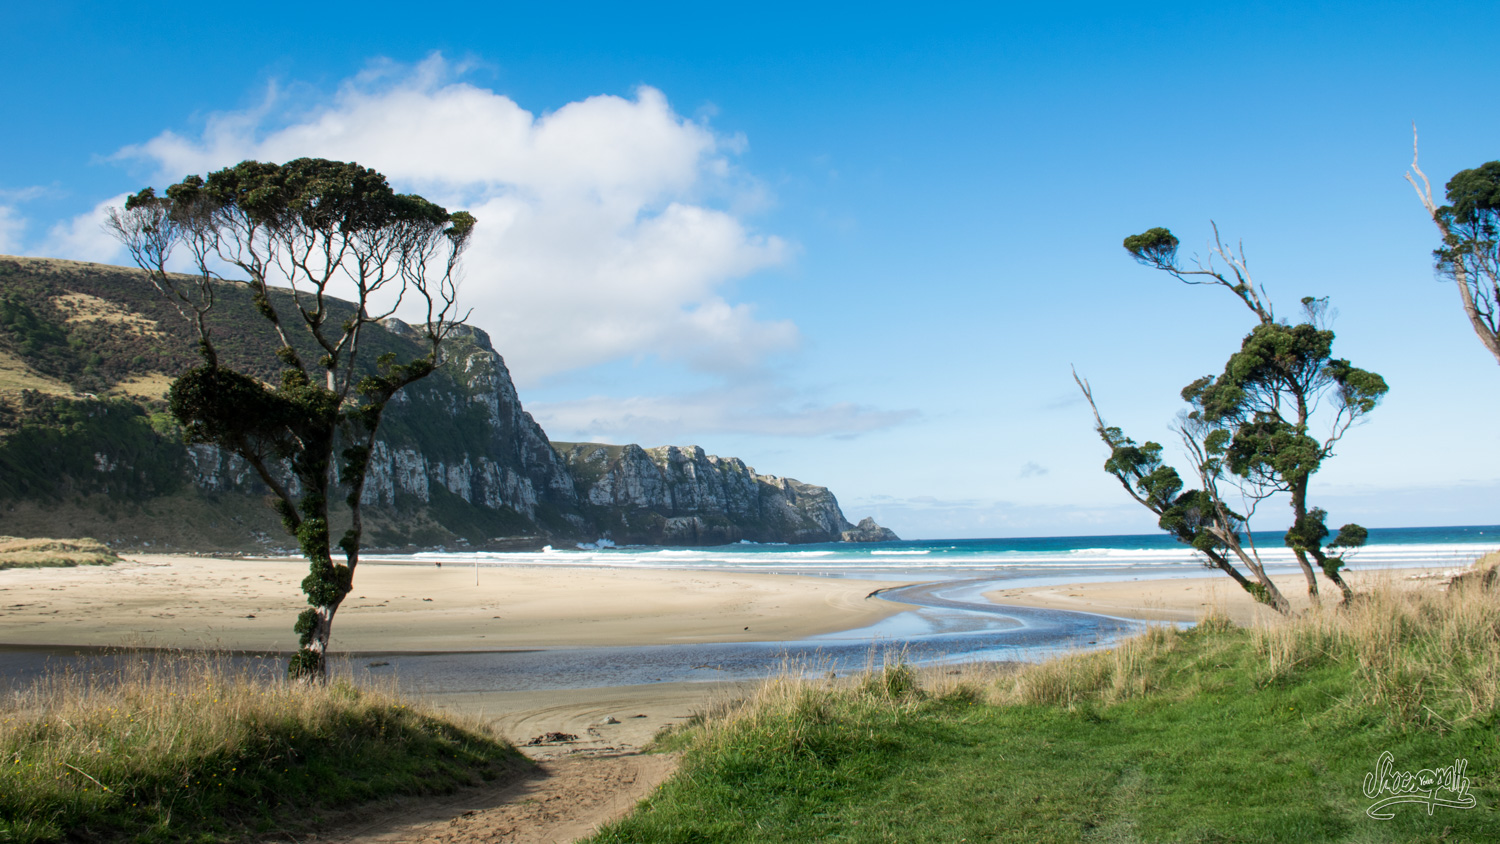 Purakaunui beach, our tent is pitched just a few meters from the sand !